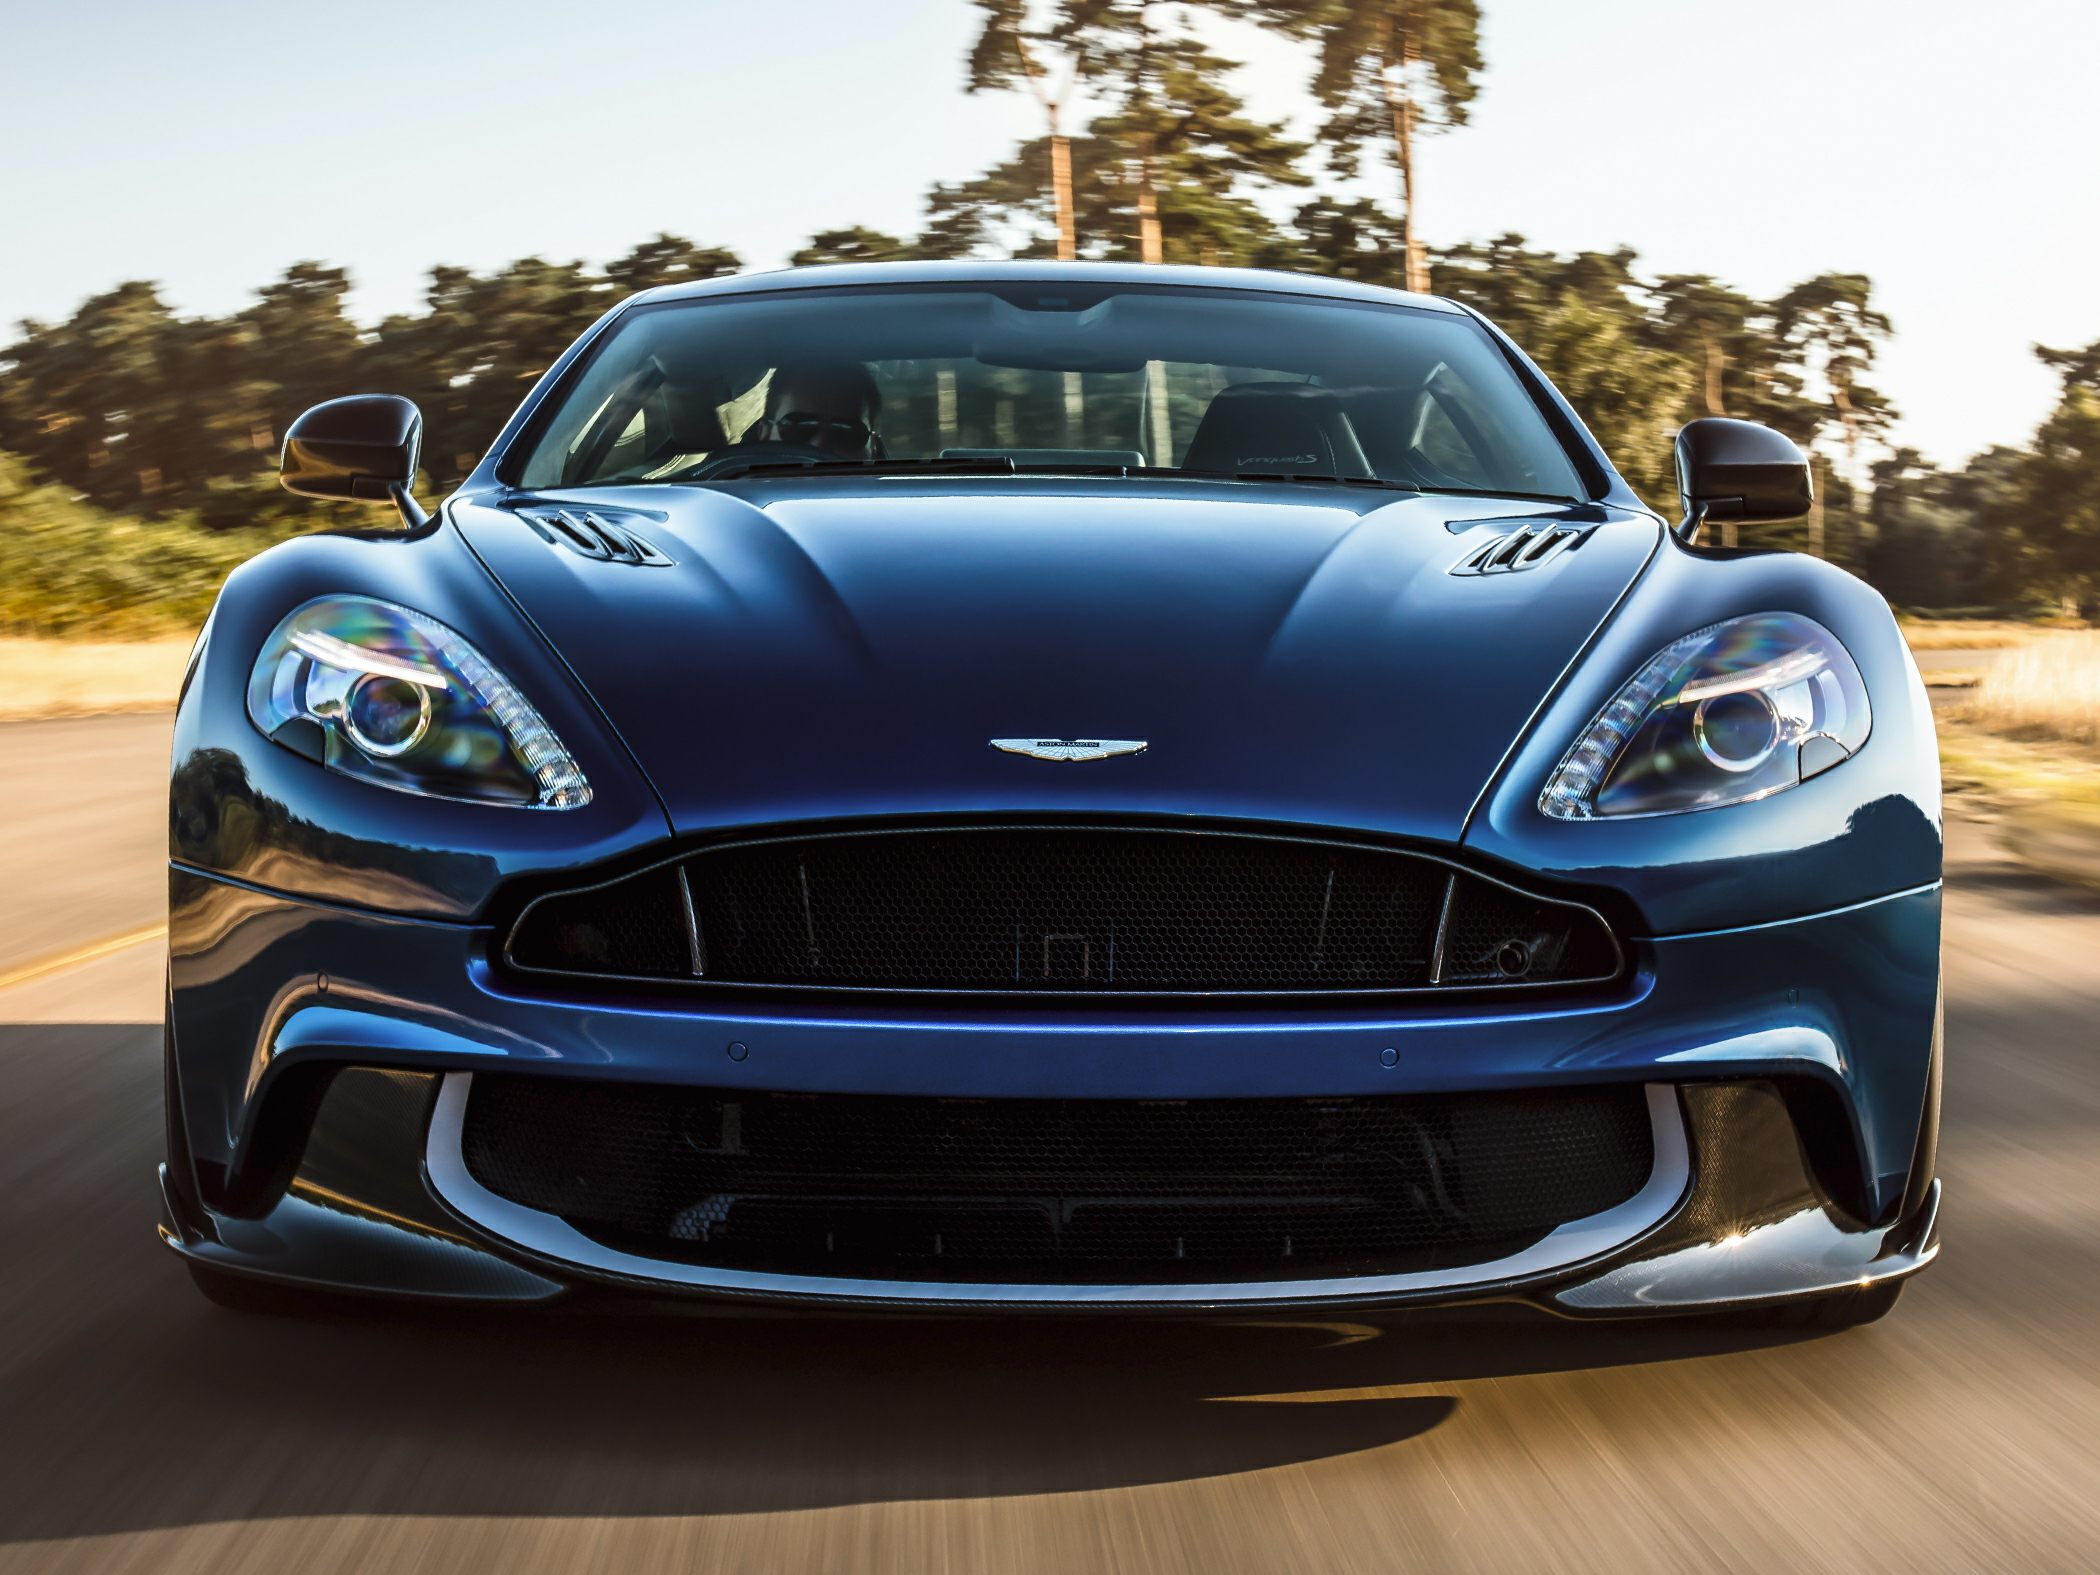 Aston Martin Vanquish Carbon Edition is back in black [w/video]